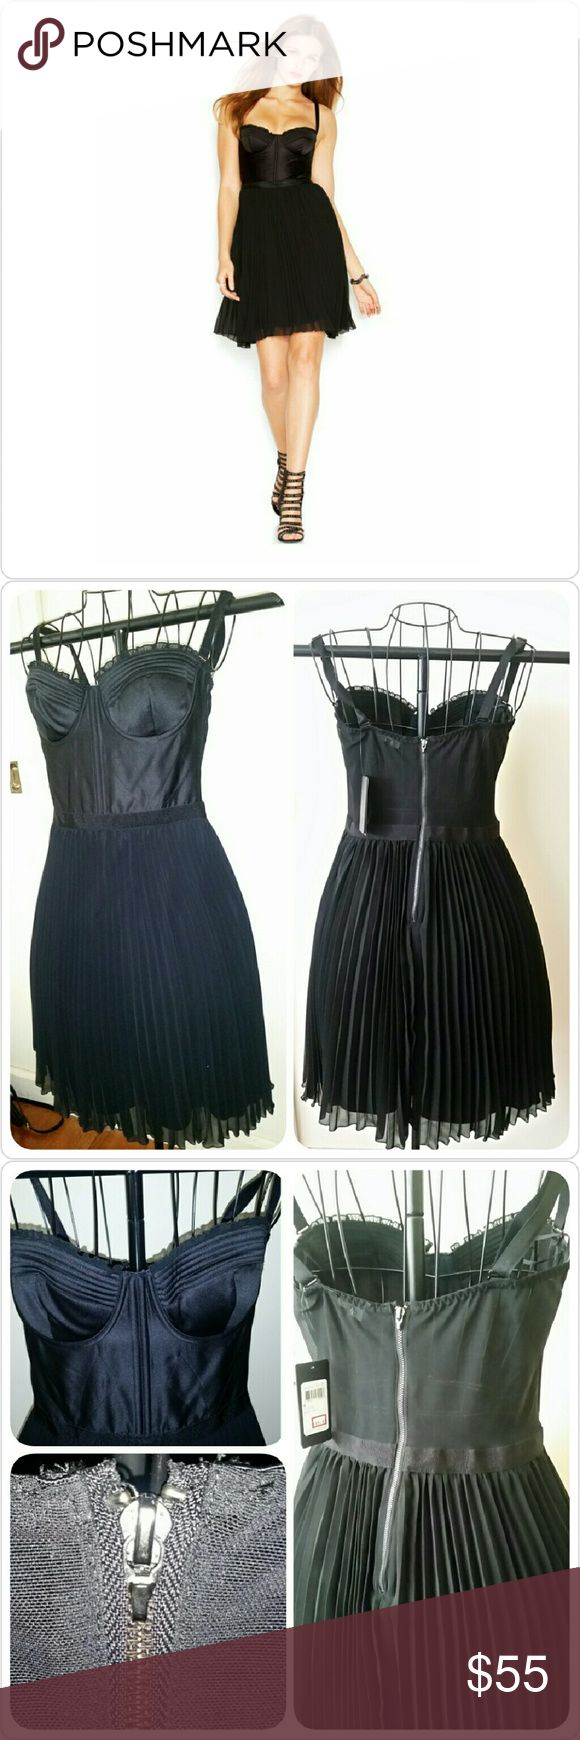 "*Guess* Corset Dress Black corset dress w/ pleated skirt and removable adjustable shoulder straps. Zipper in back. Skirt is lined. (Pic 3 shows where zipper handle is missing, but it's still is easy to grasp and zip.) About 30"" in length, exclusive of straps. 100% Polyester Guess Dresses"